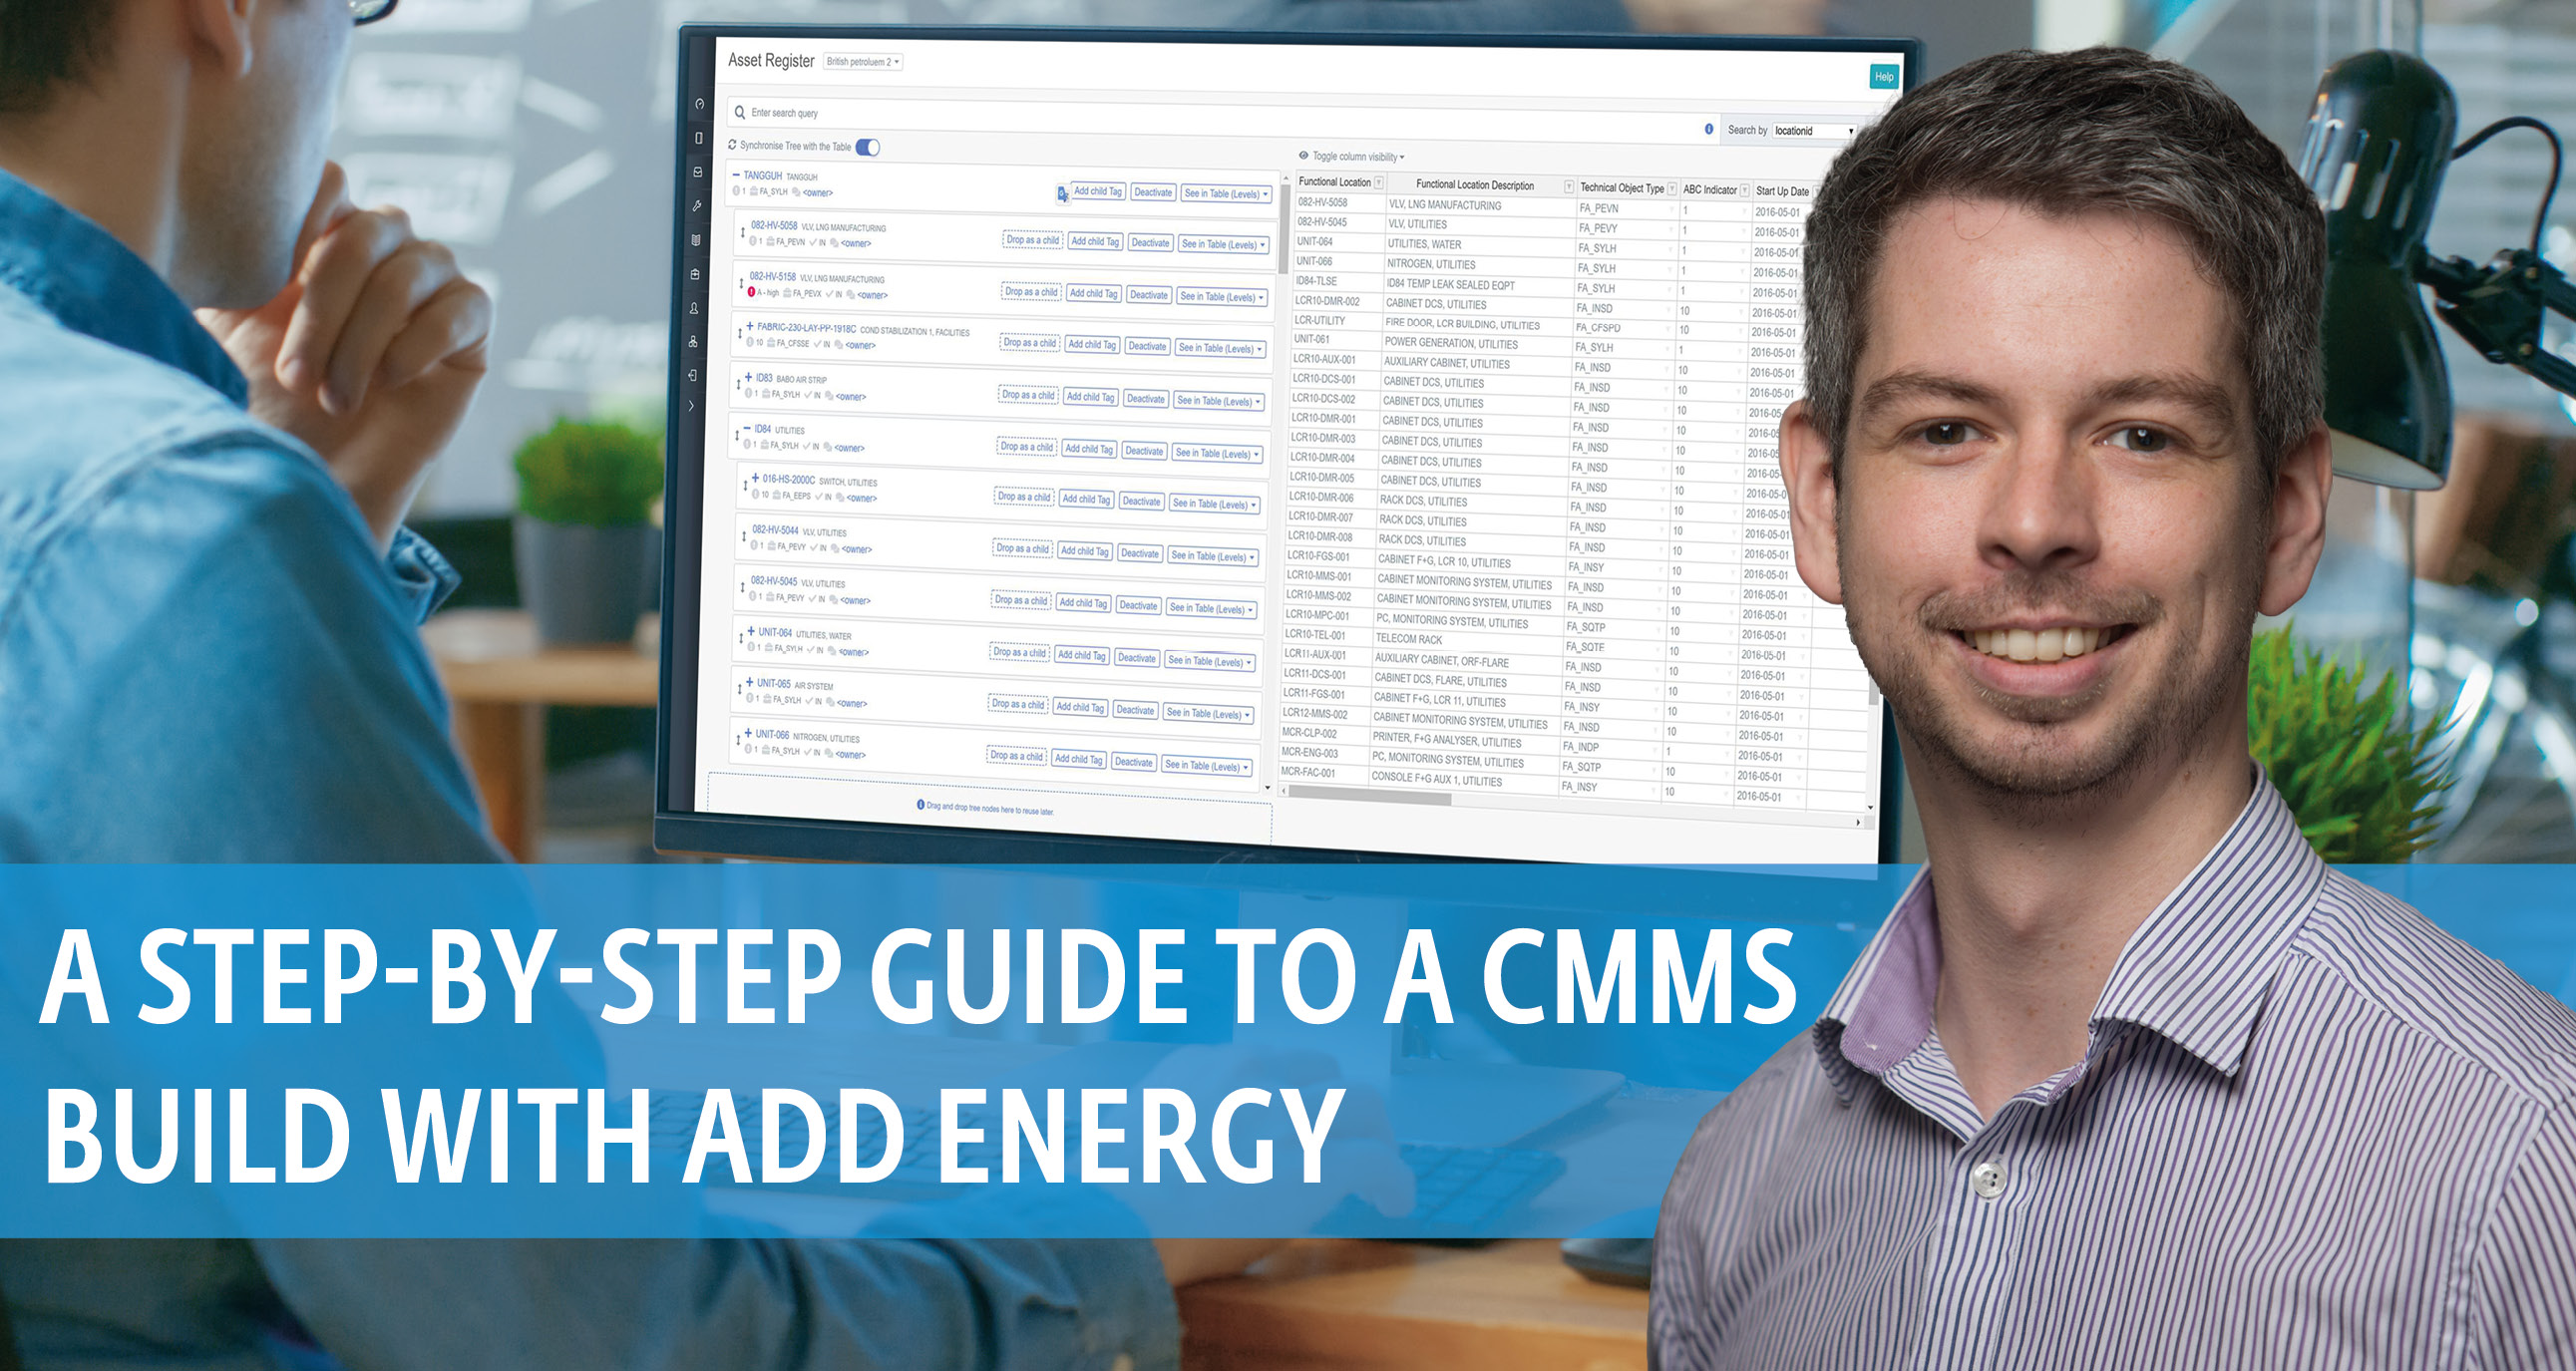 A Step-by-step guide to a CMMS build with Add Energy